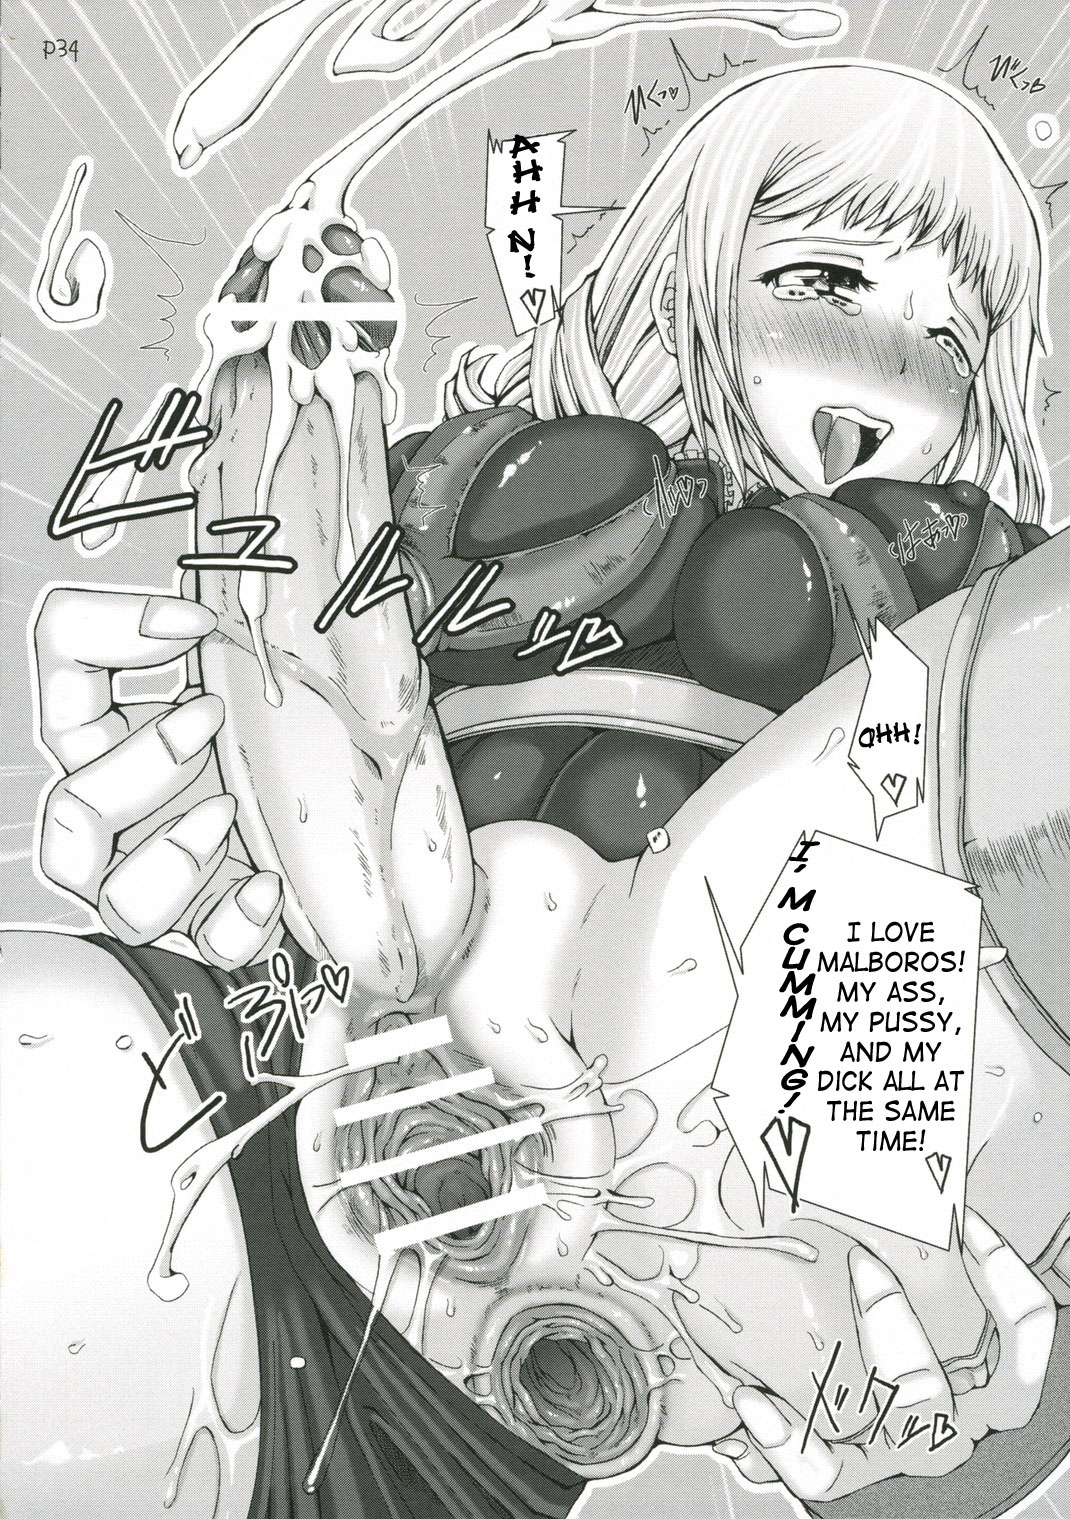 Naked shemale manga